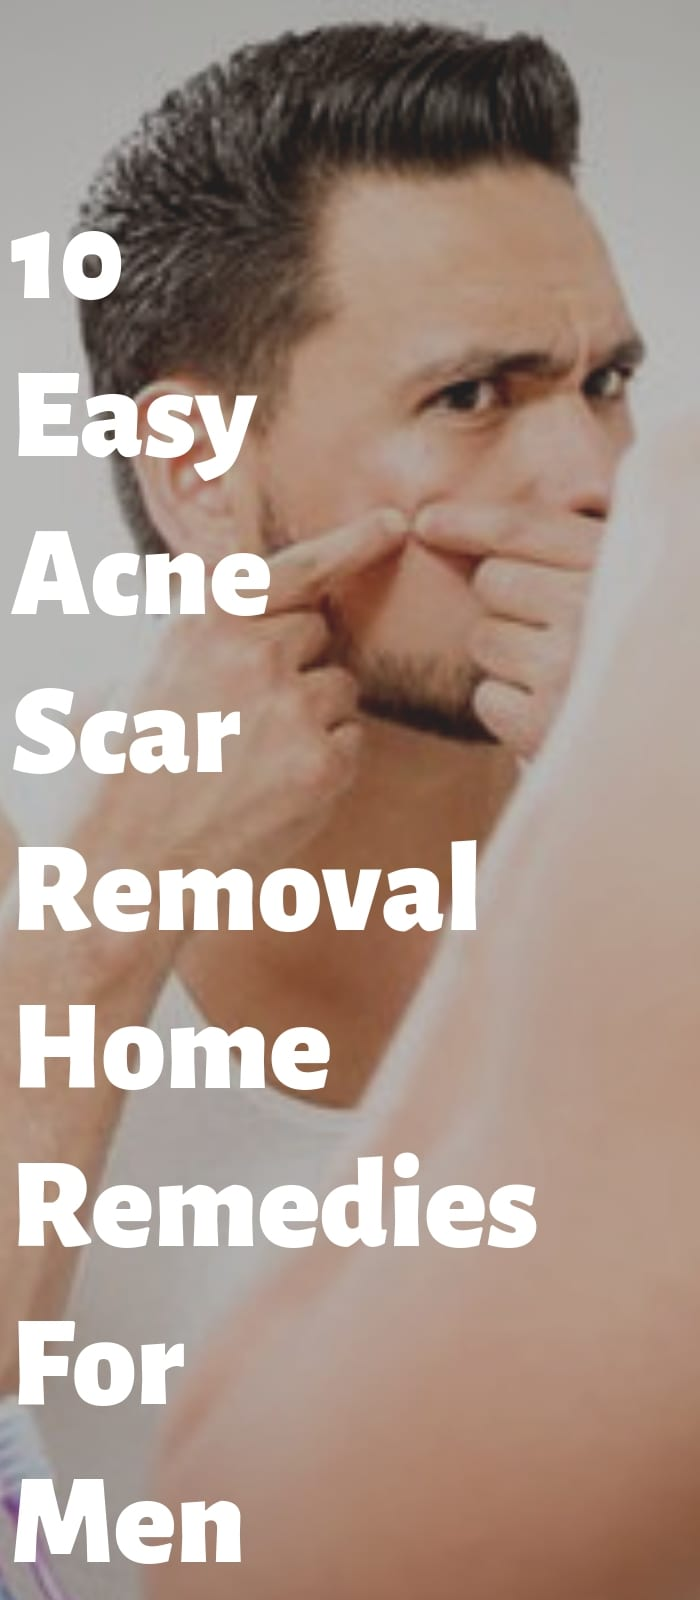 10 Easy Acne Scar Removal Home Remedies For Men.